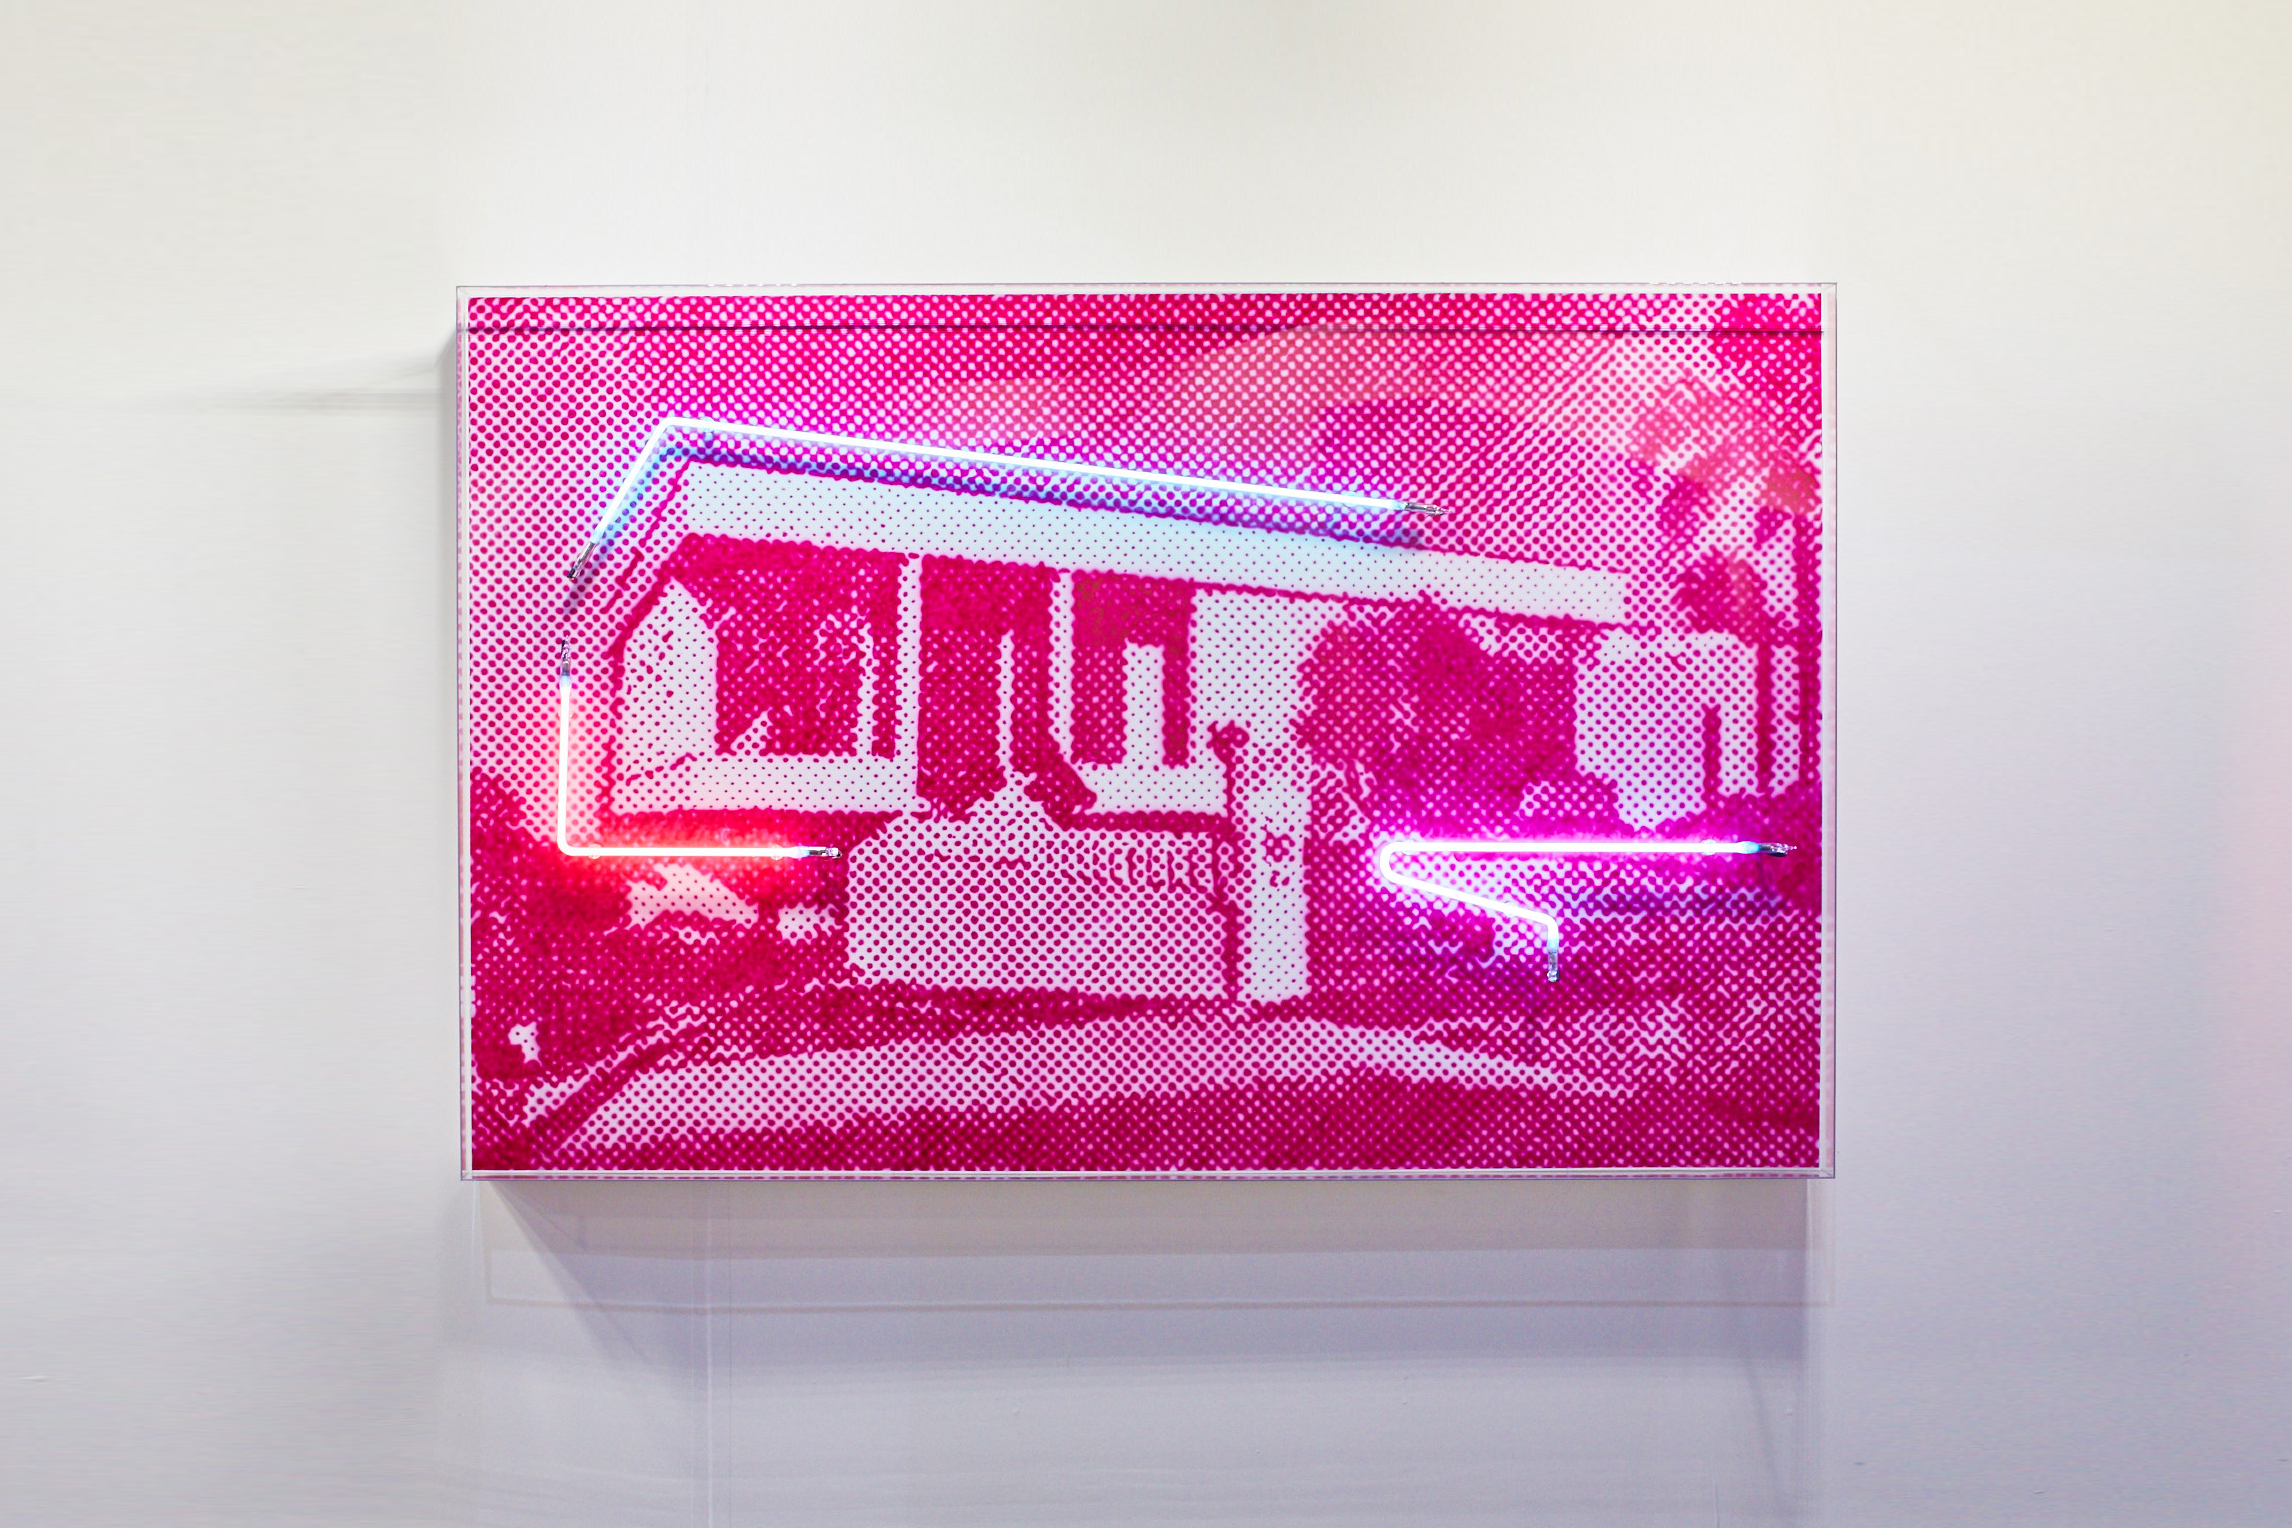 Iwanoff house  Airbrush acrylic polymer and neon on dibond, acrylic frame 110x170cm each